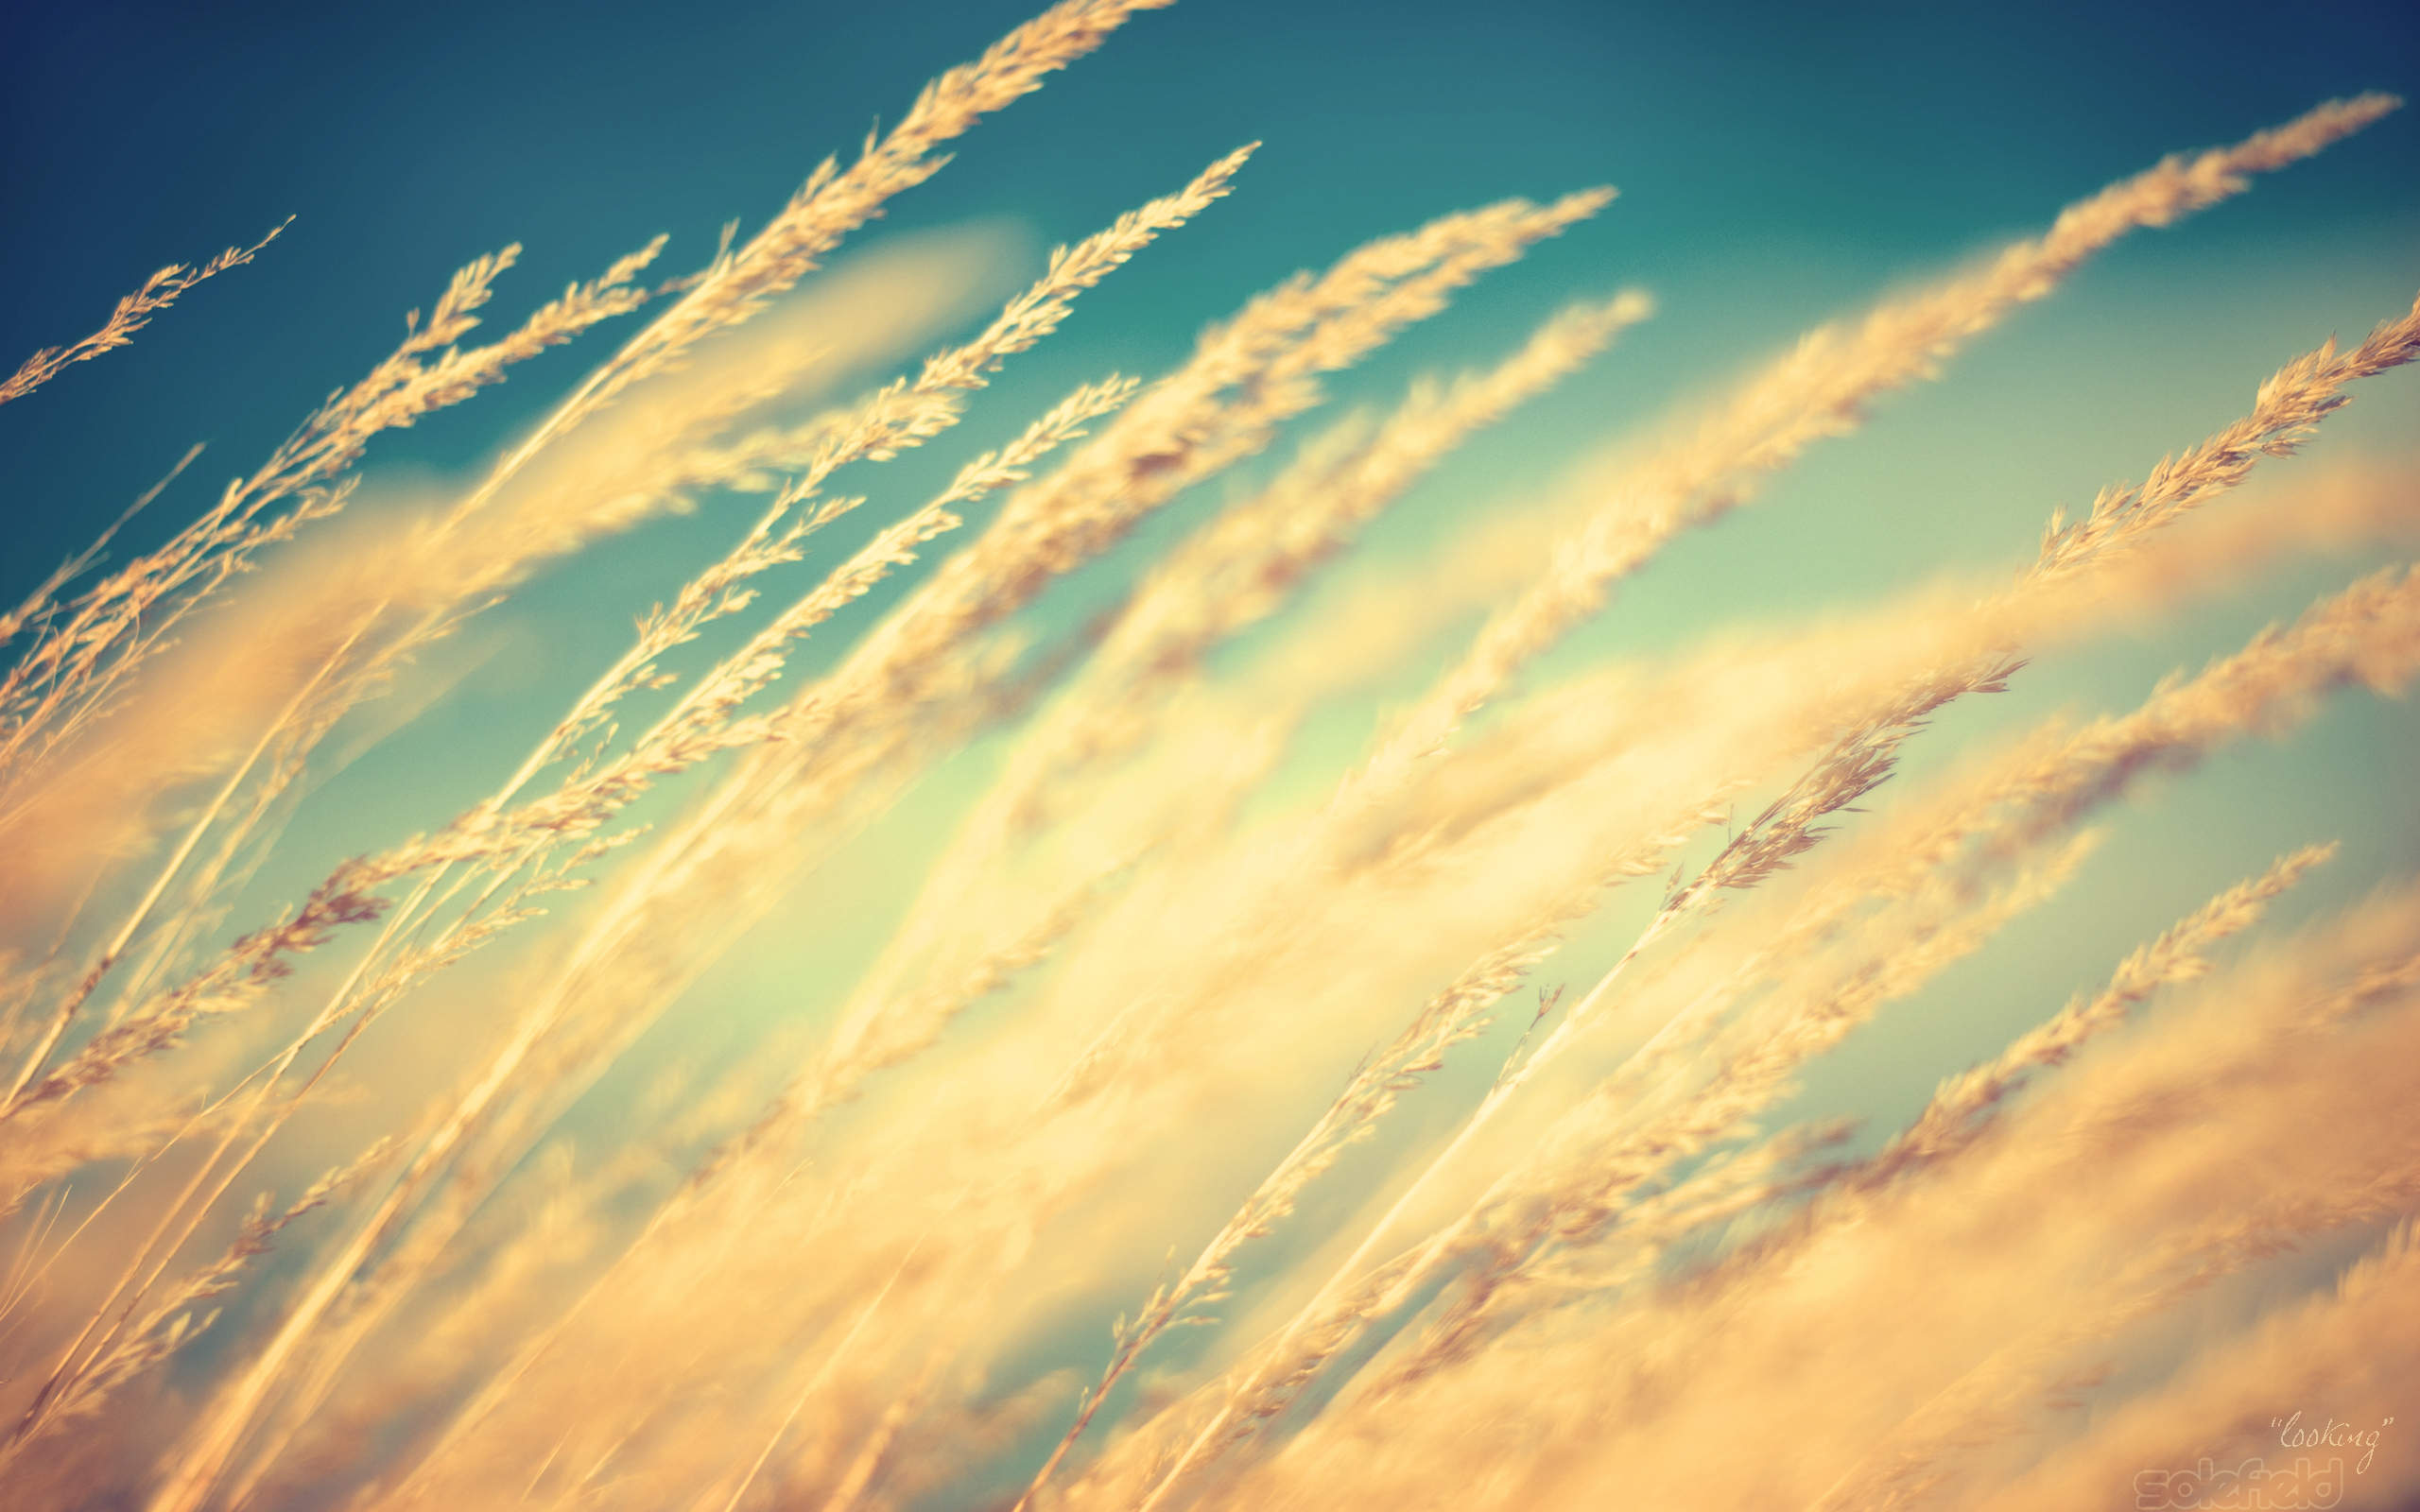 General 2560x1600 Sun nature macro wheat plants sunlight